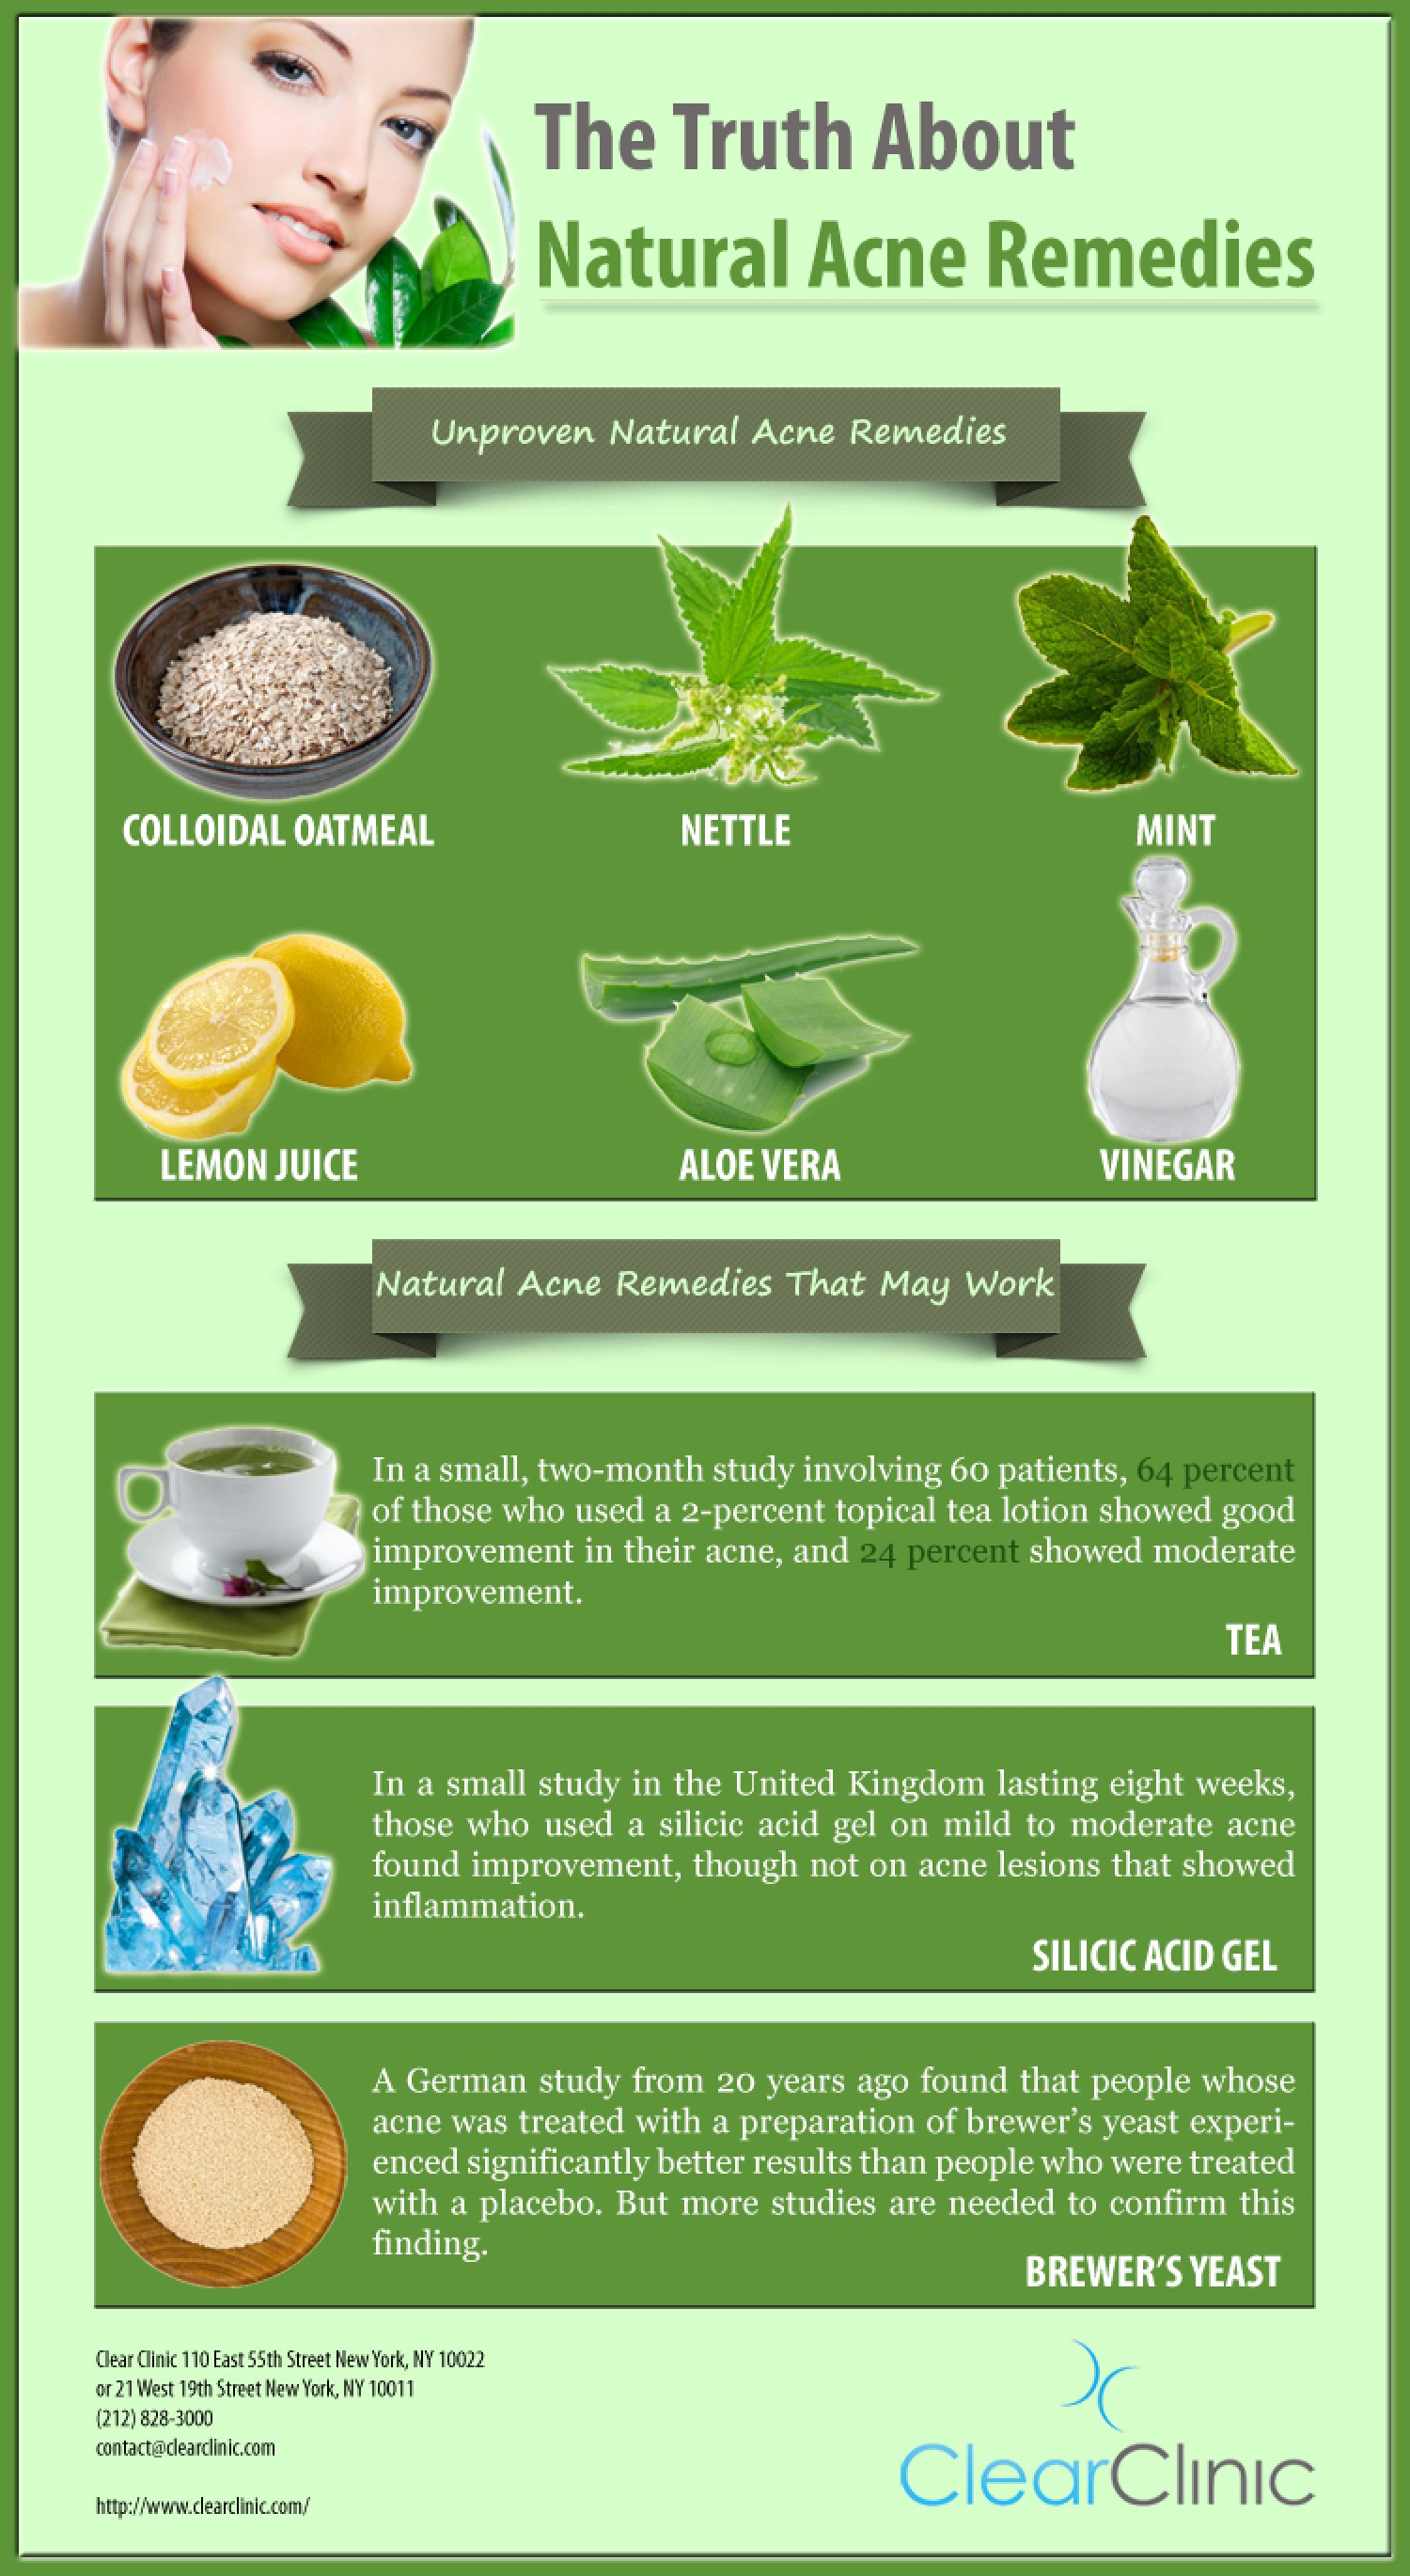 The Truth about Natural Acne Remedies